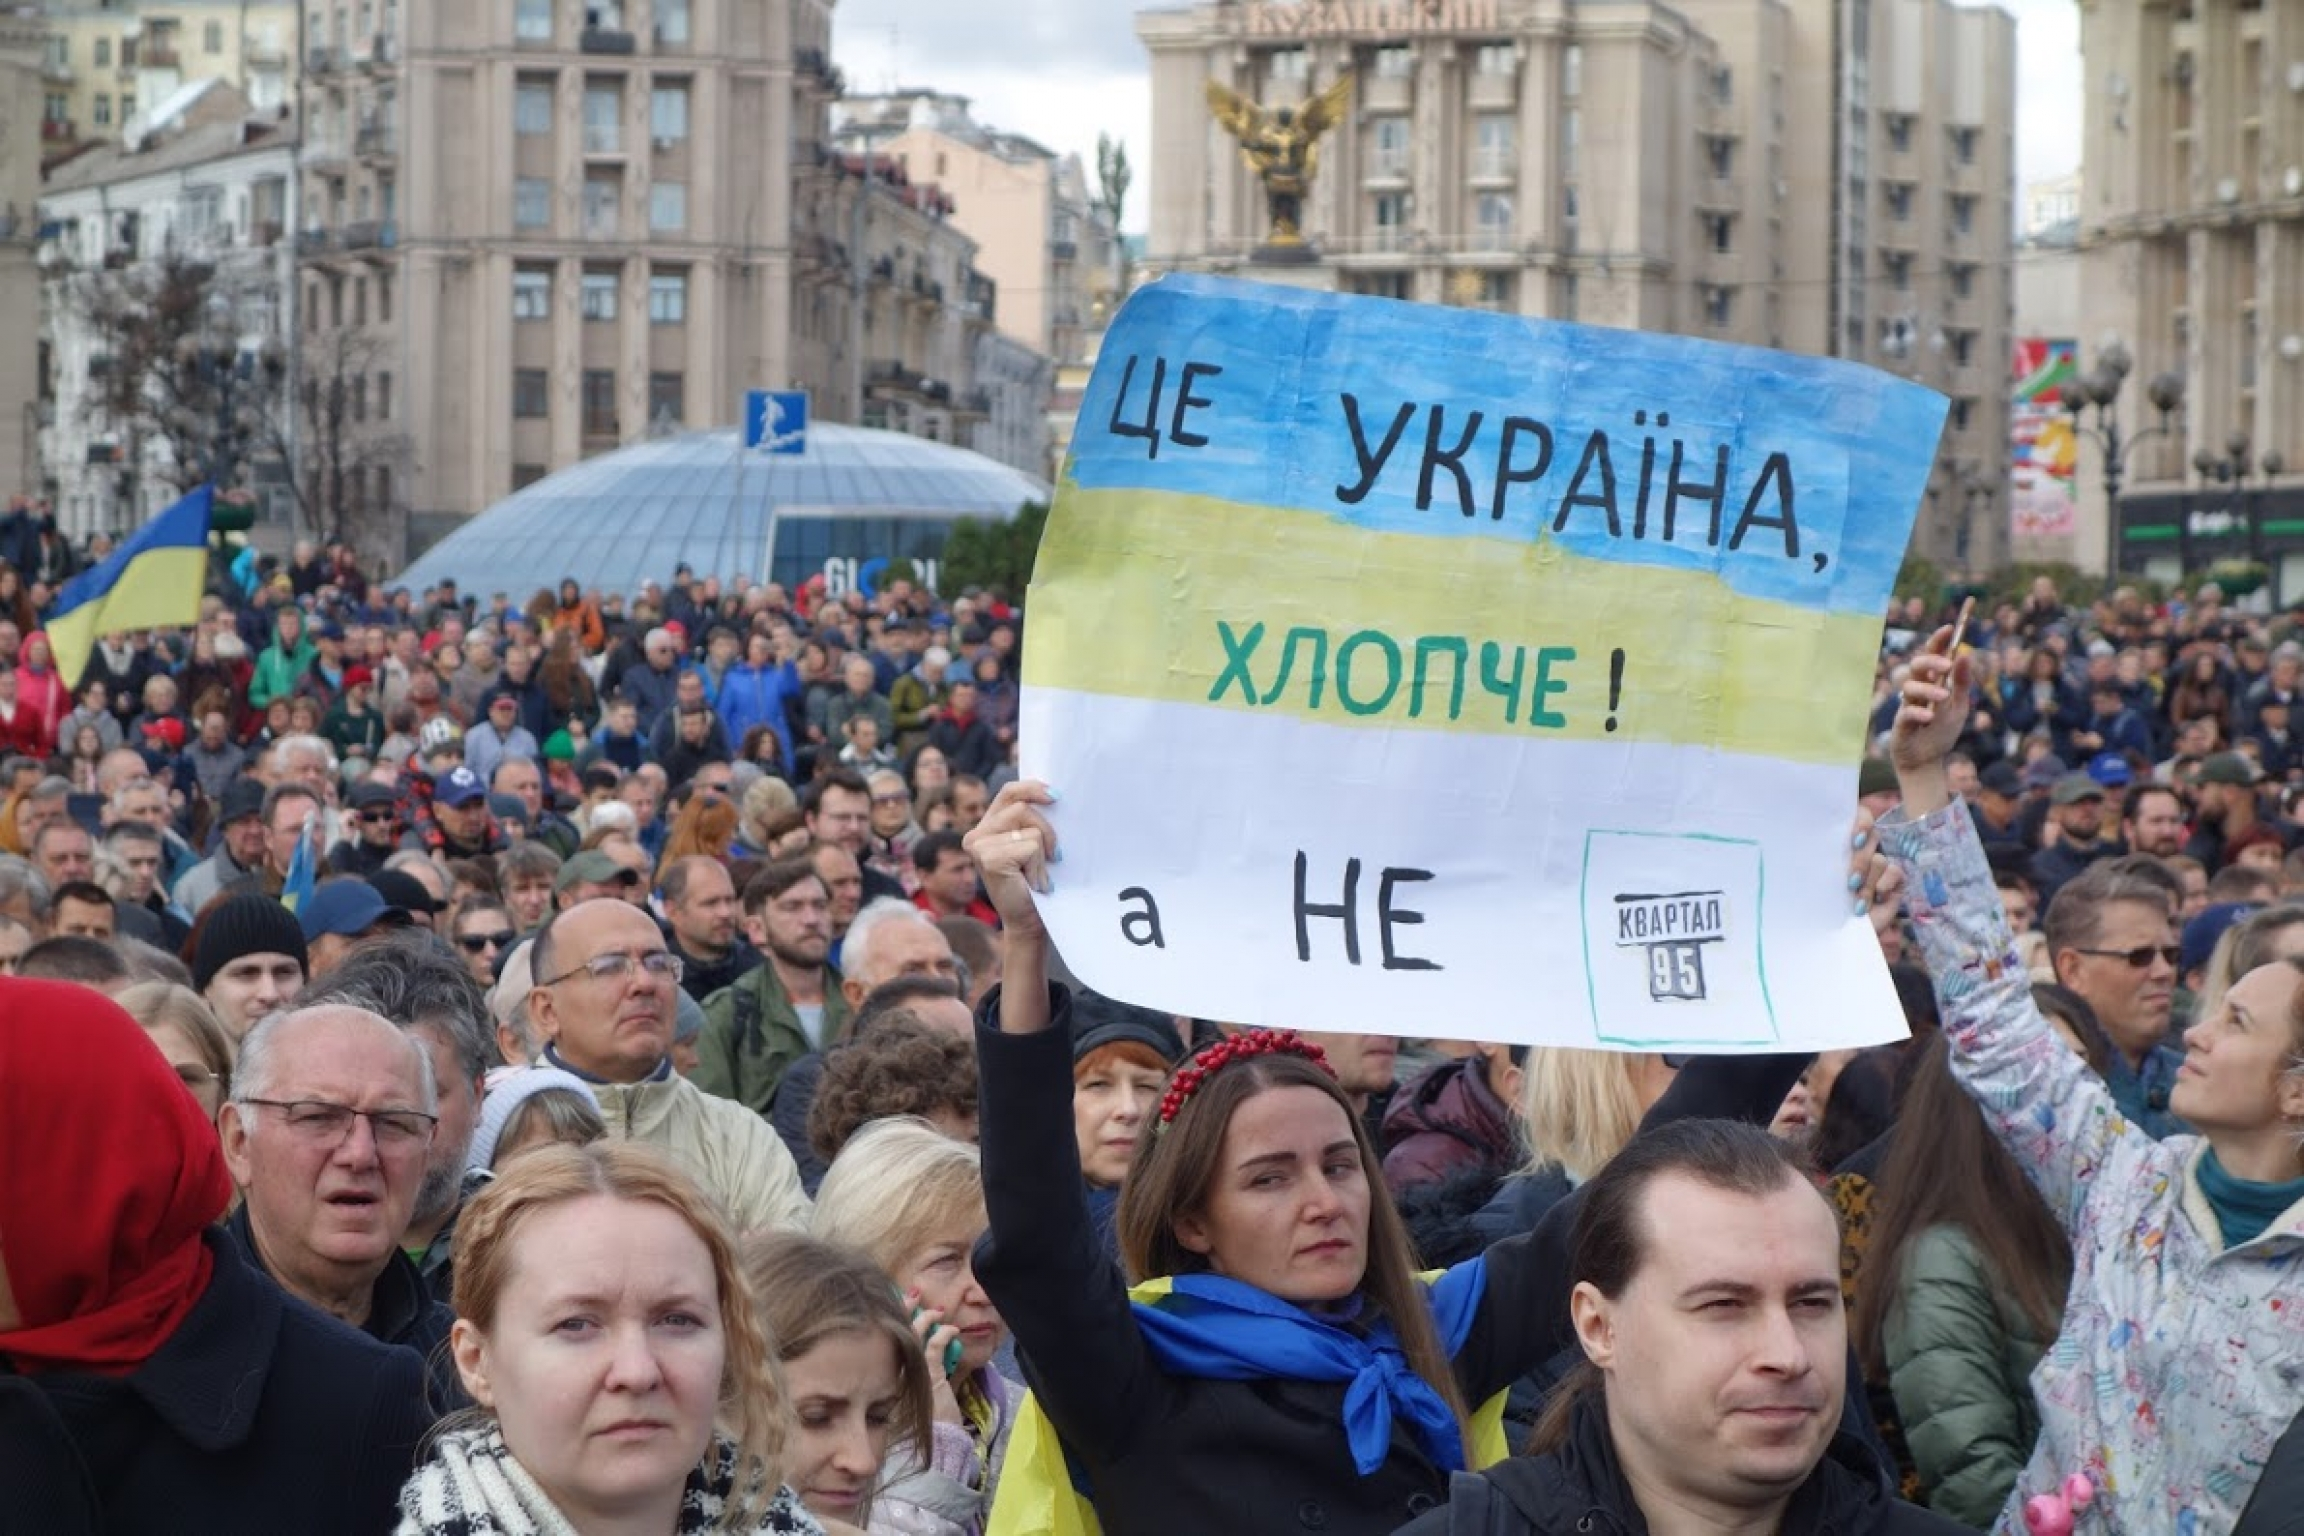 A protester holdsa hand-written sign to callout Ukrainian President Volodymyr Zelenskiy during a protest.